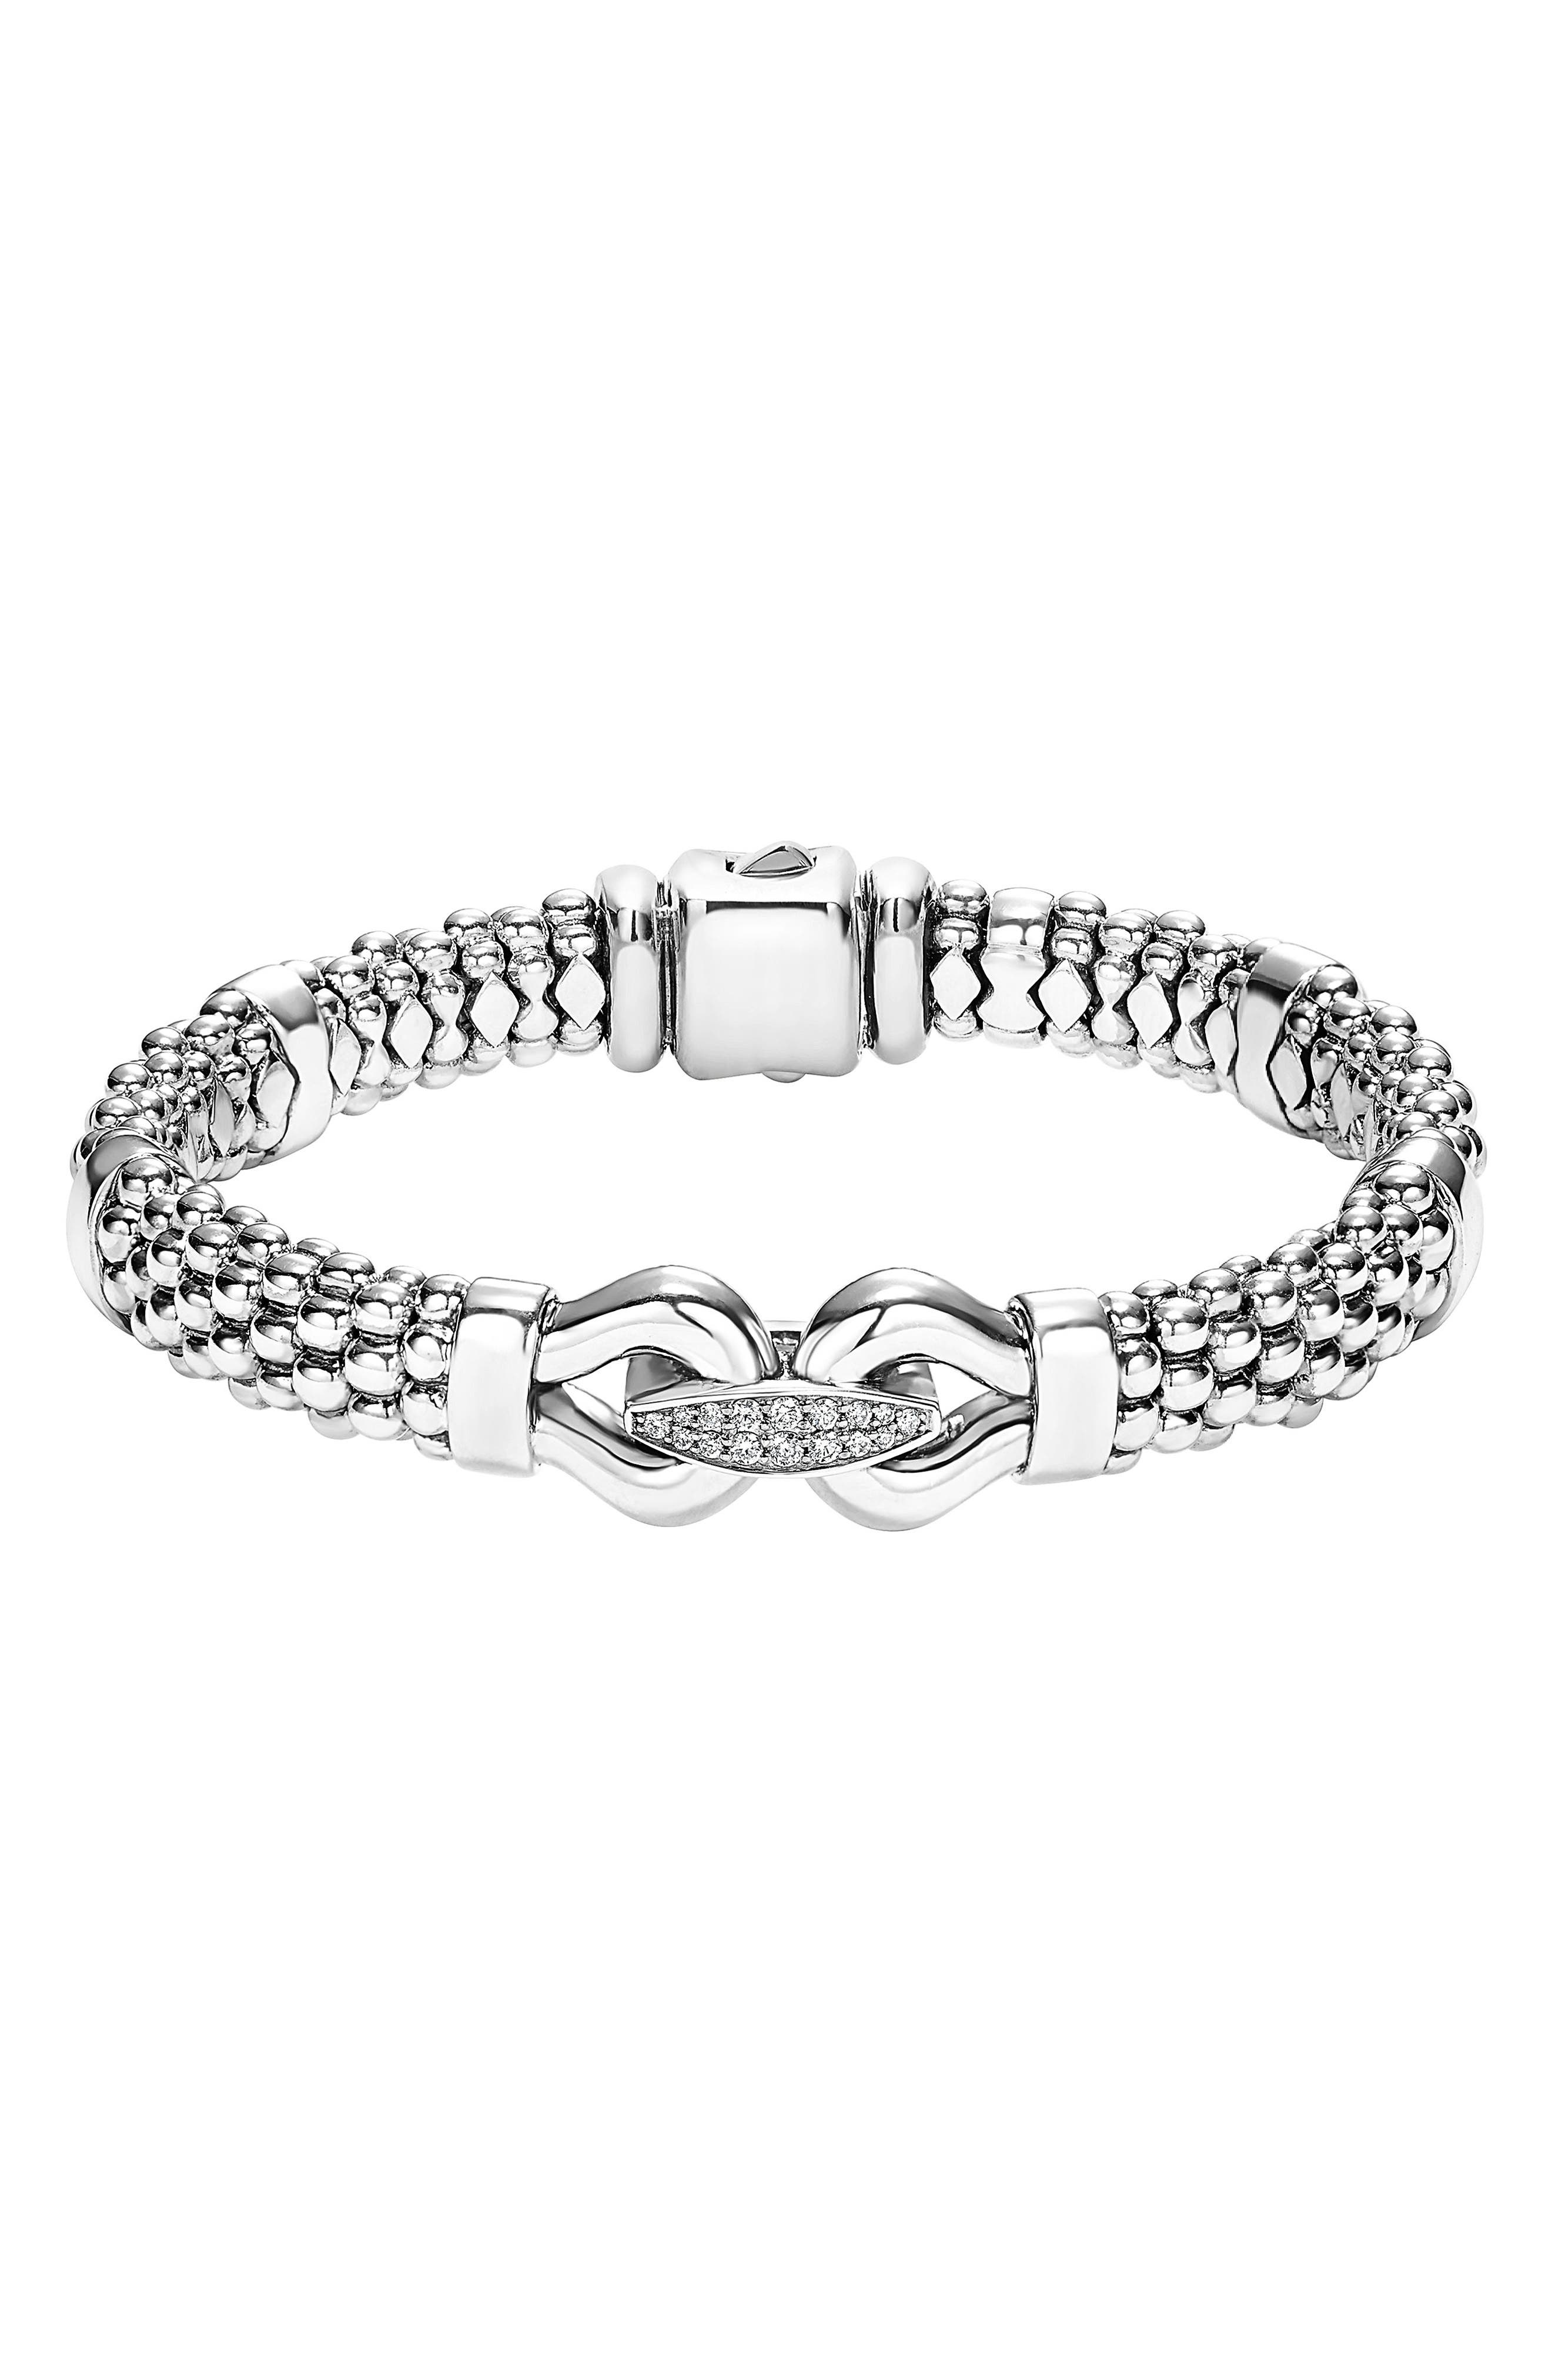 'Derby' Diamond Buckle Rope Bracelet,                         Main,                         color, STERLING SILVER